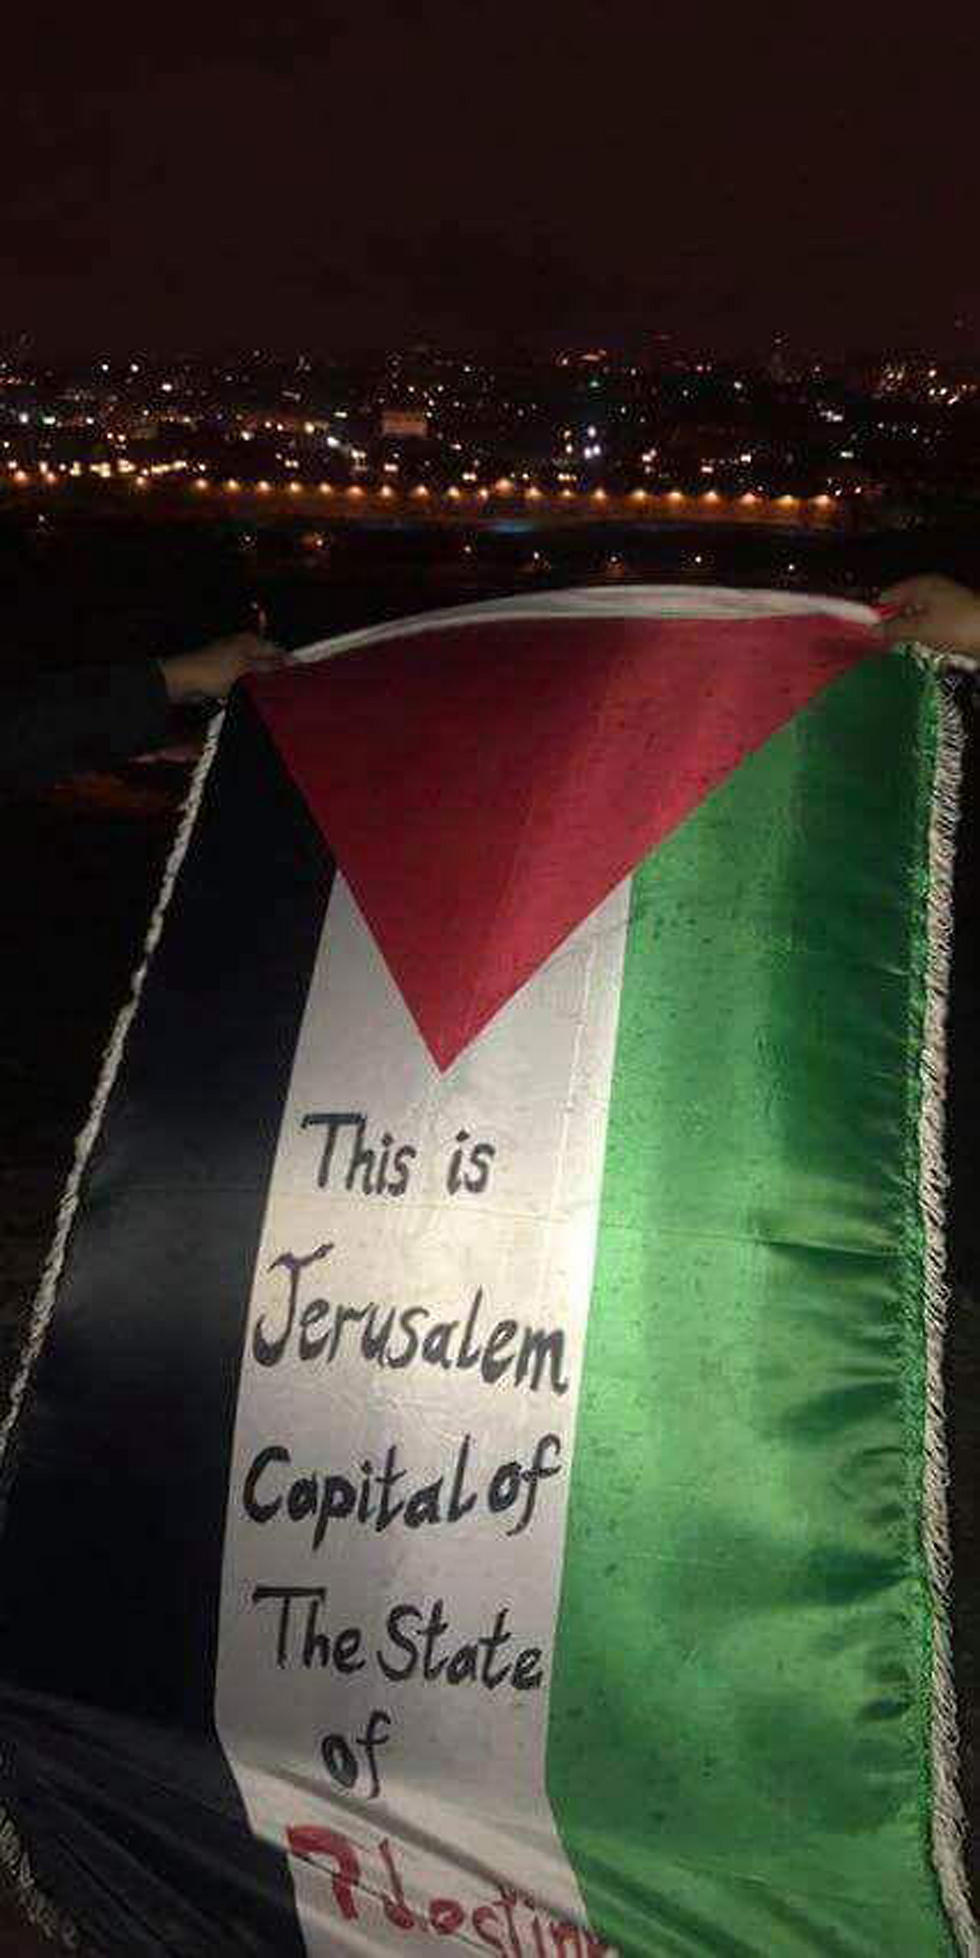 The first signs of protest started showing in Jerusalem